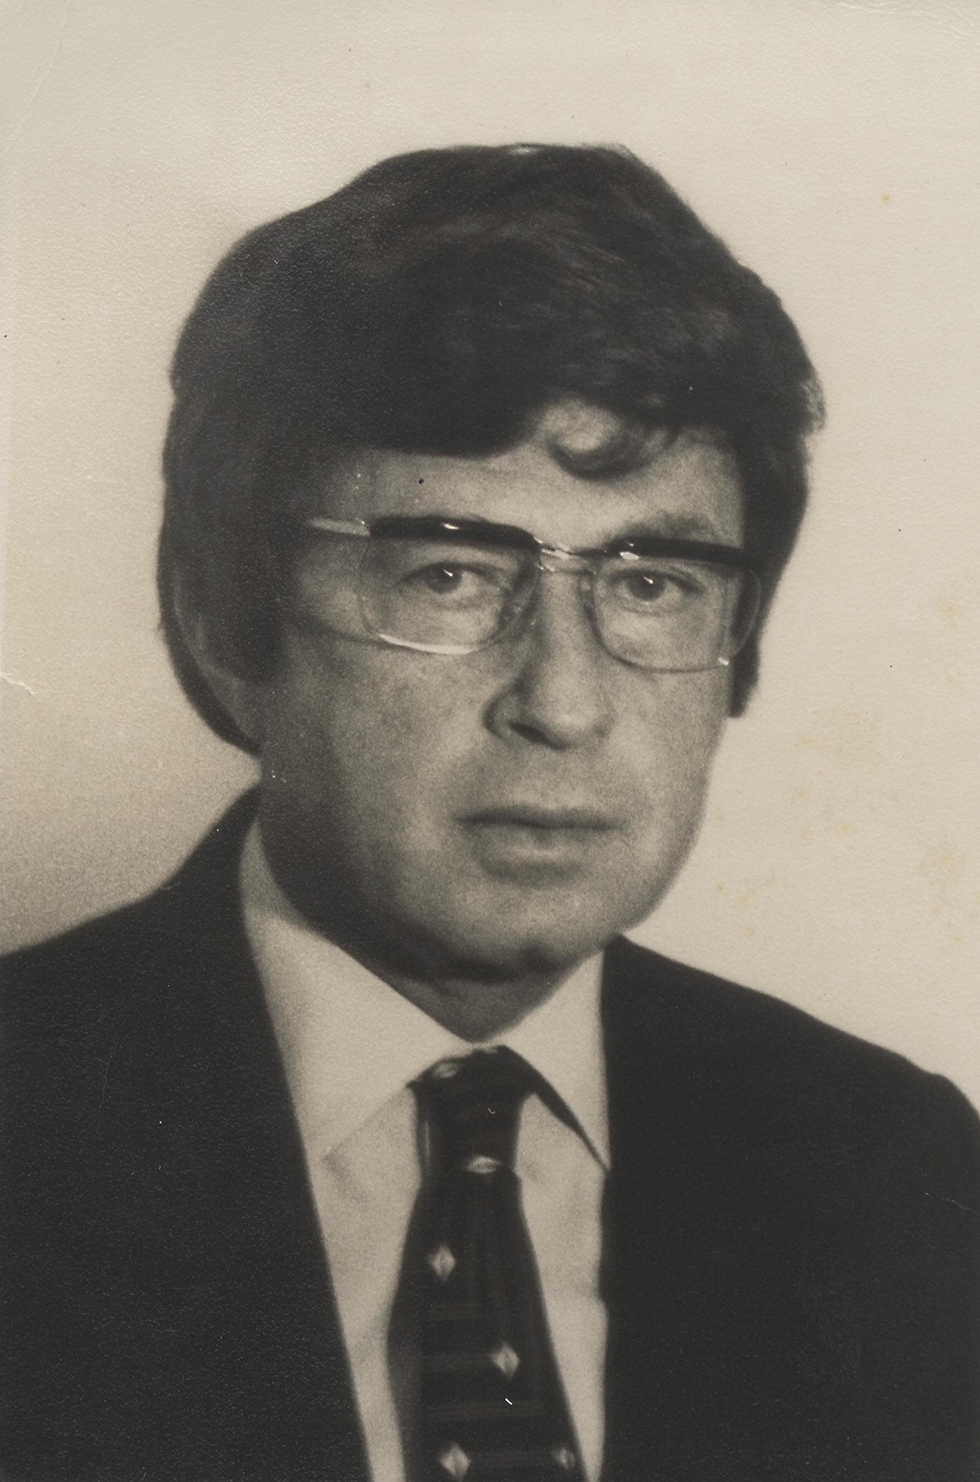 Yitzhak Rabin wearing a wig before travelling to an Arab country, 1975 (Photo: Government Press Office)